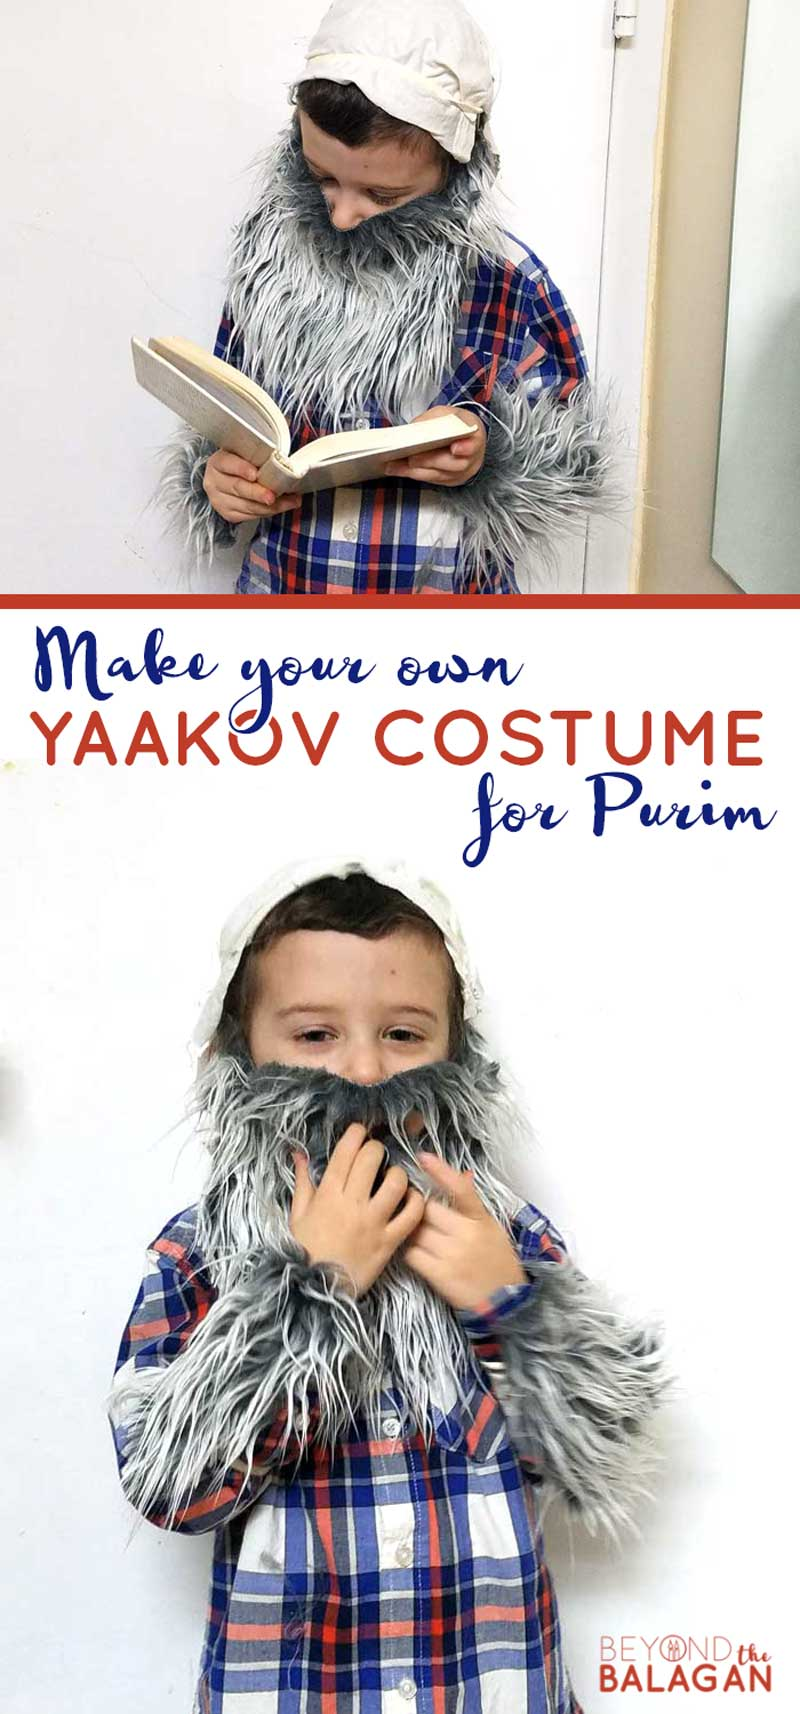 An adorable costume of Yaakov Avinu #jewish #purim #diycostume